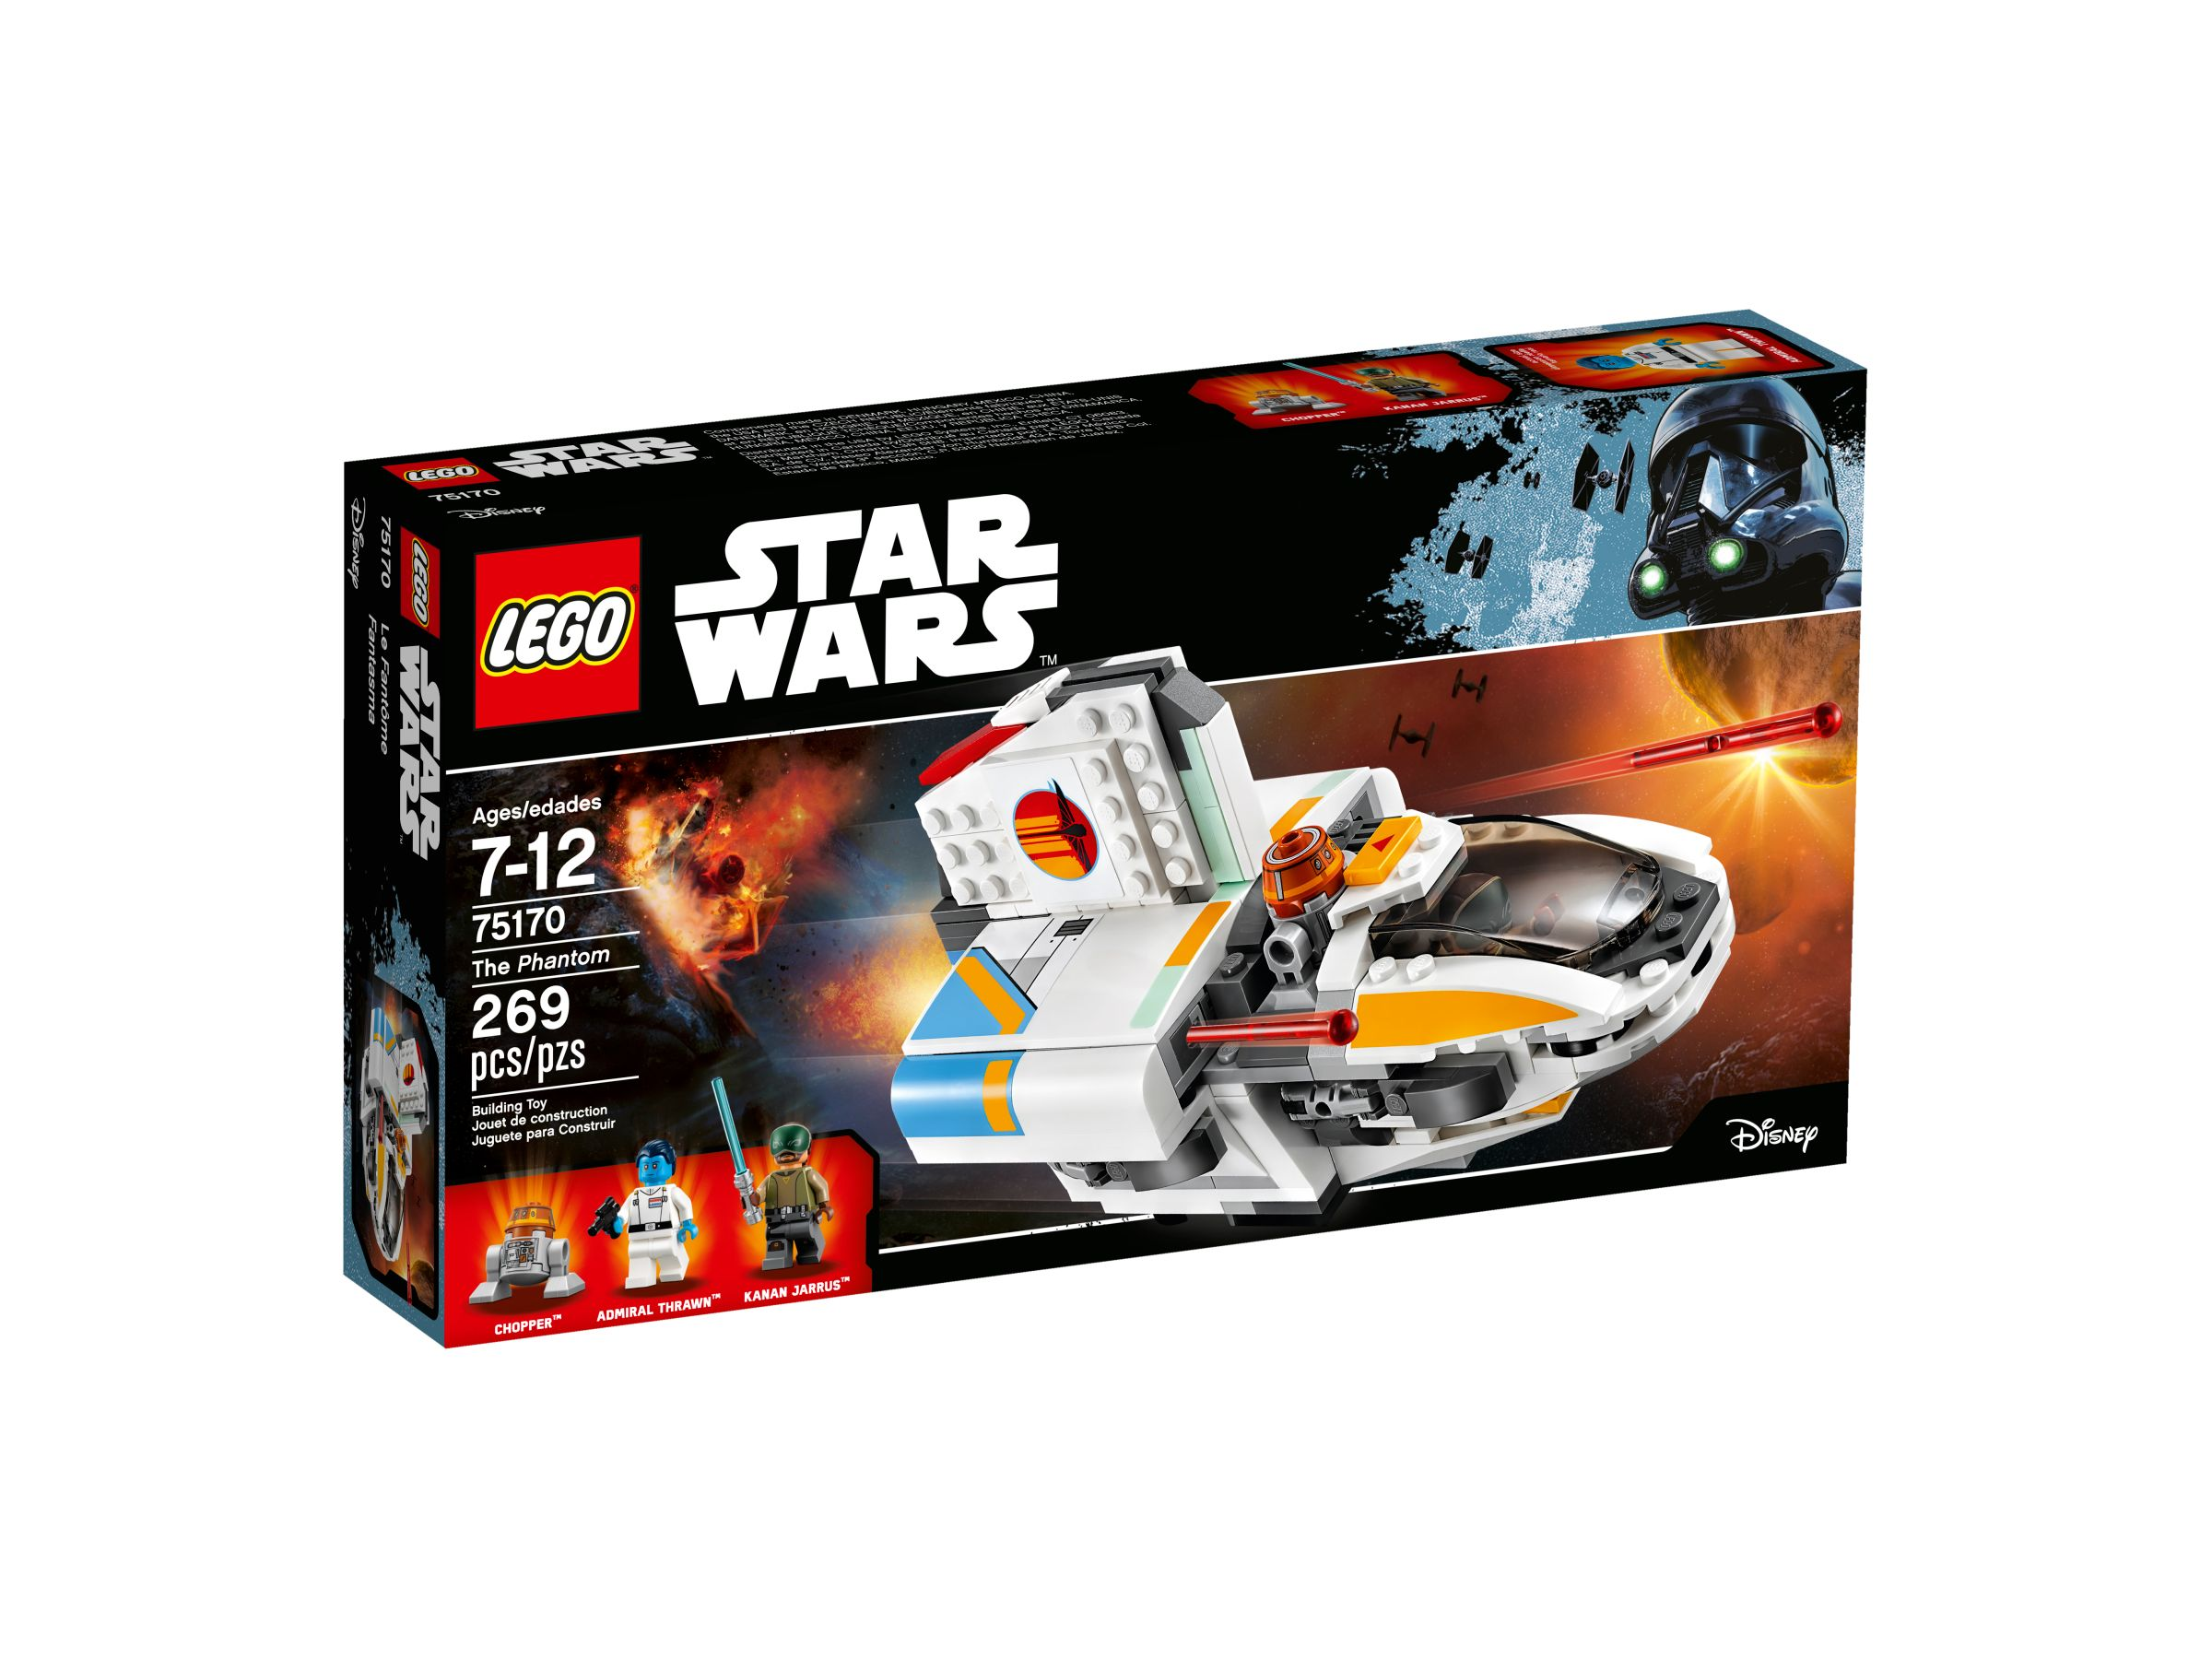 LEGO Star Wars 75170 The Phantom LEGO_75170_alt1.jpg